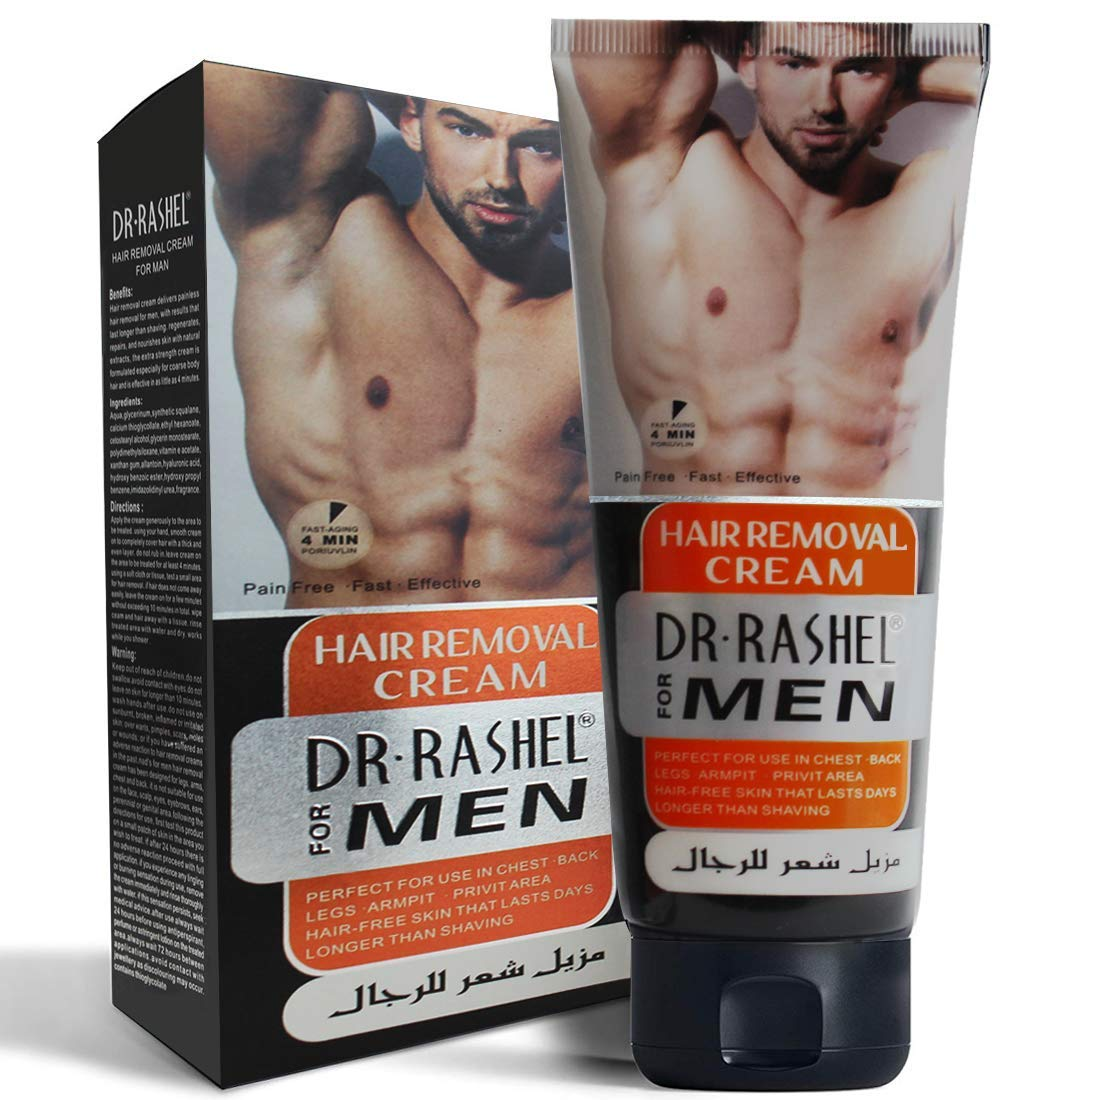 Depilatories Cream for Men, Aloe Hair Removal Cream for Men, PAIN-FREE, NO ORDOR, gently remove unwanted hair. Suitable for legs, body, underarms and other areas. Suitable for all skin types, 120ML